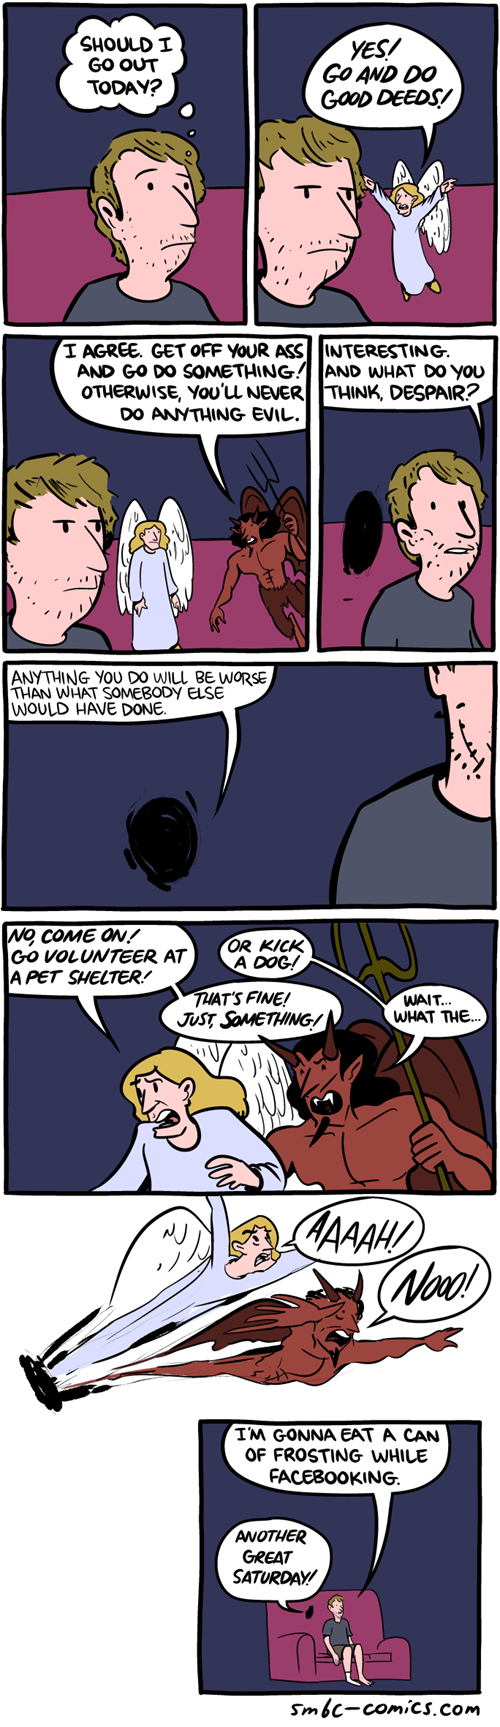 devils,apathy,deeds,angels,sad but true,web comics